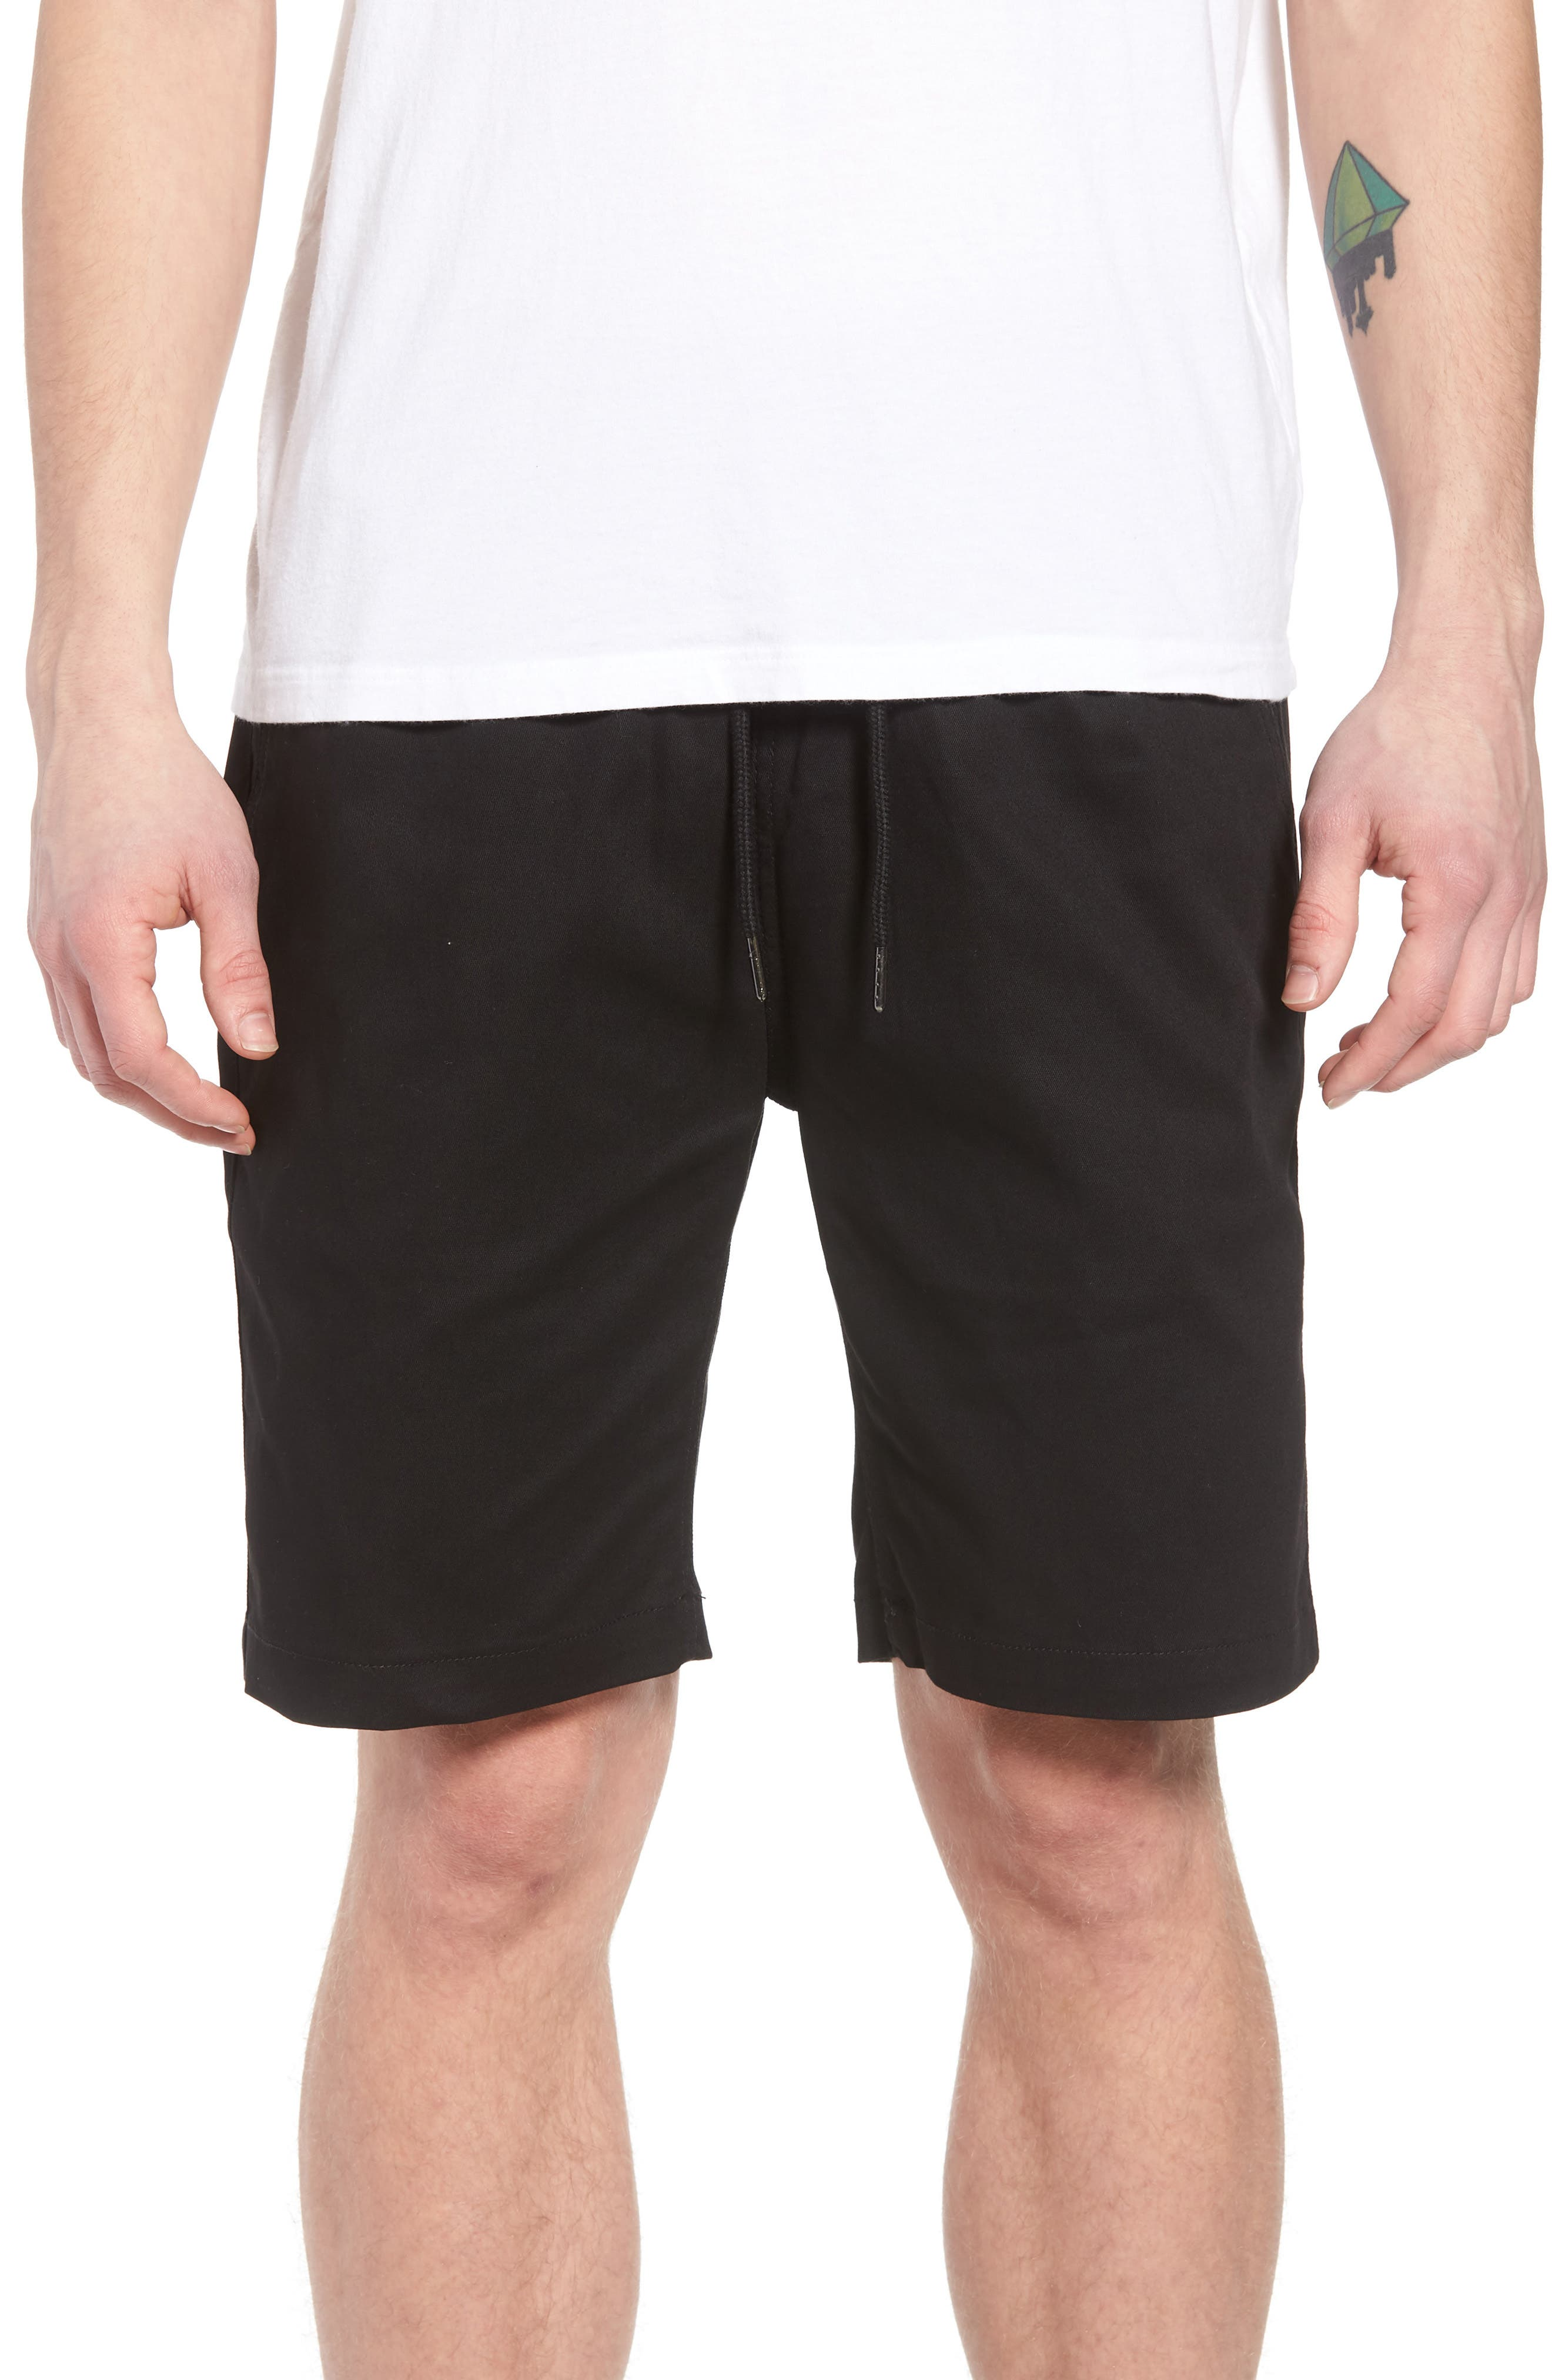 Runner Shorts,                         Main,                         color, Black